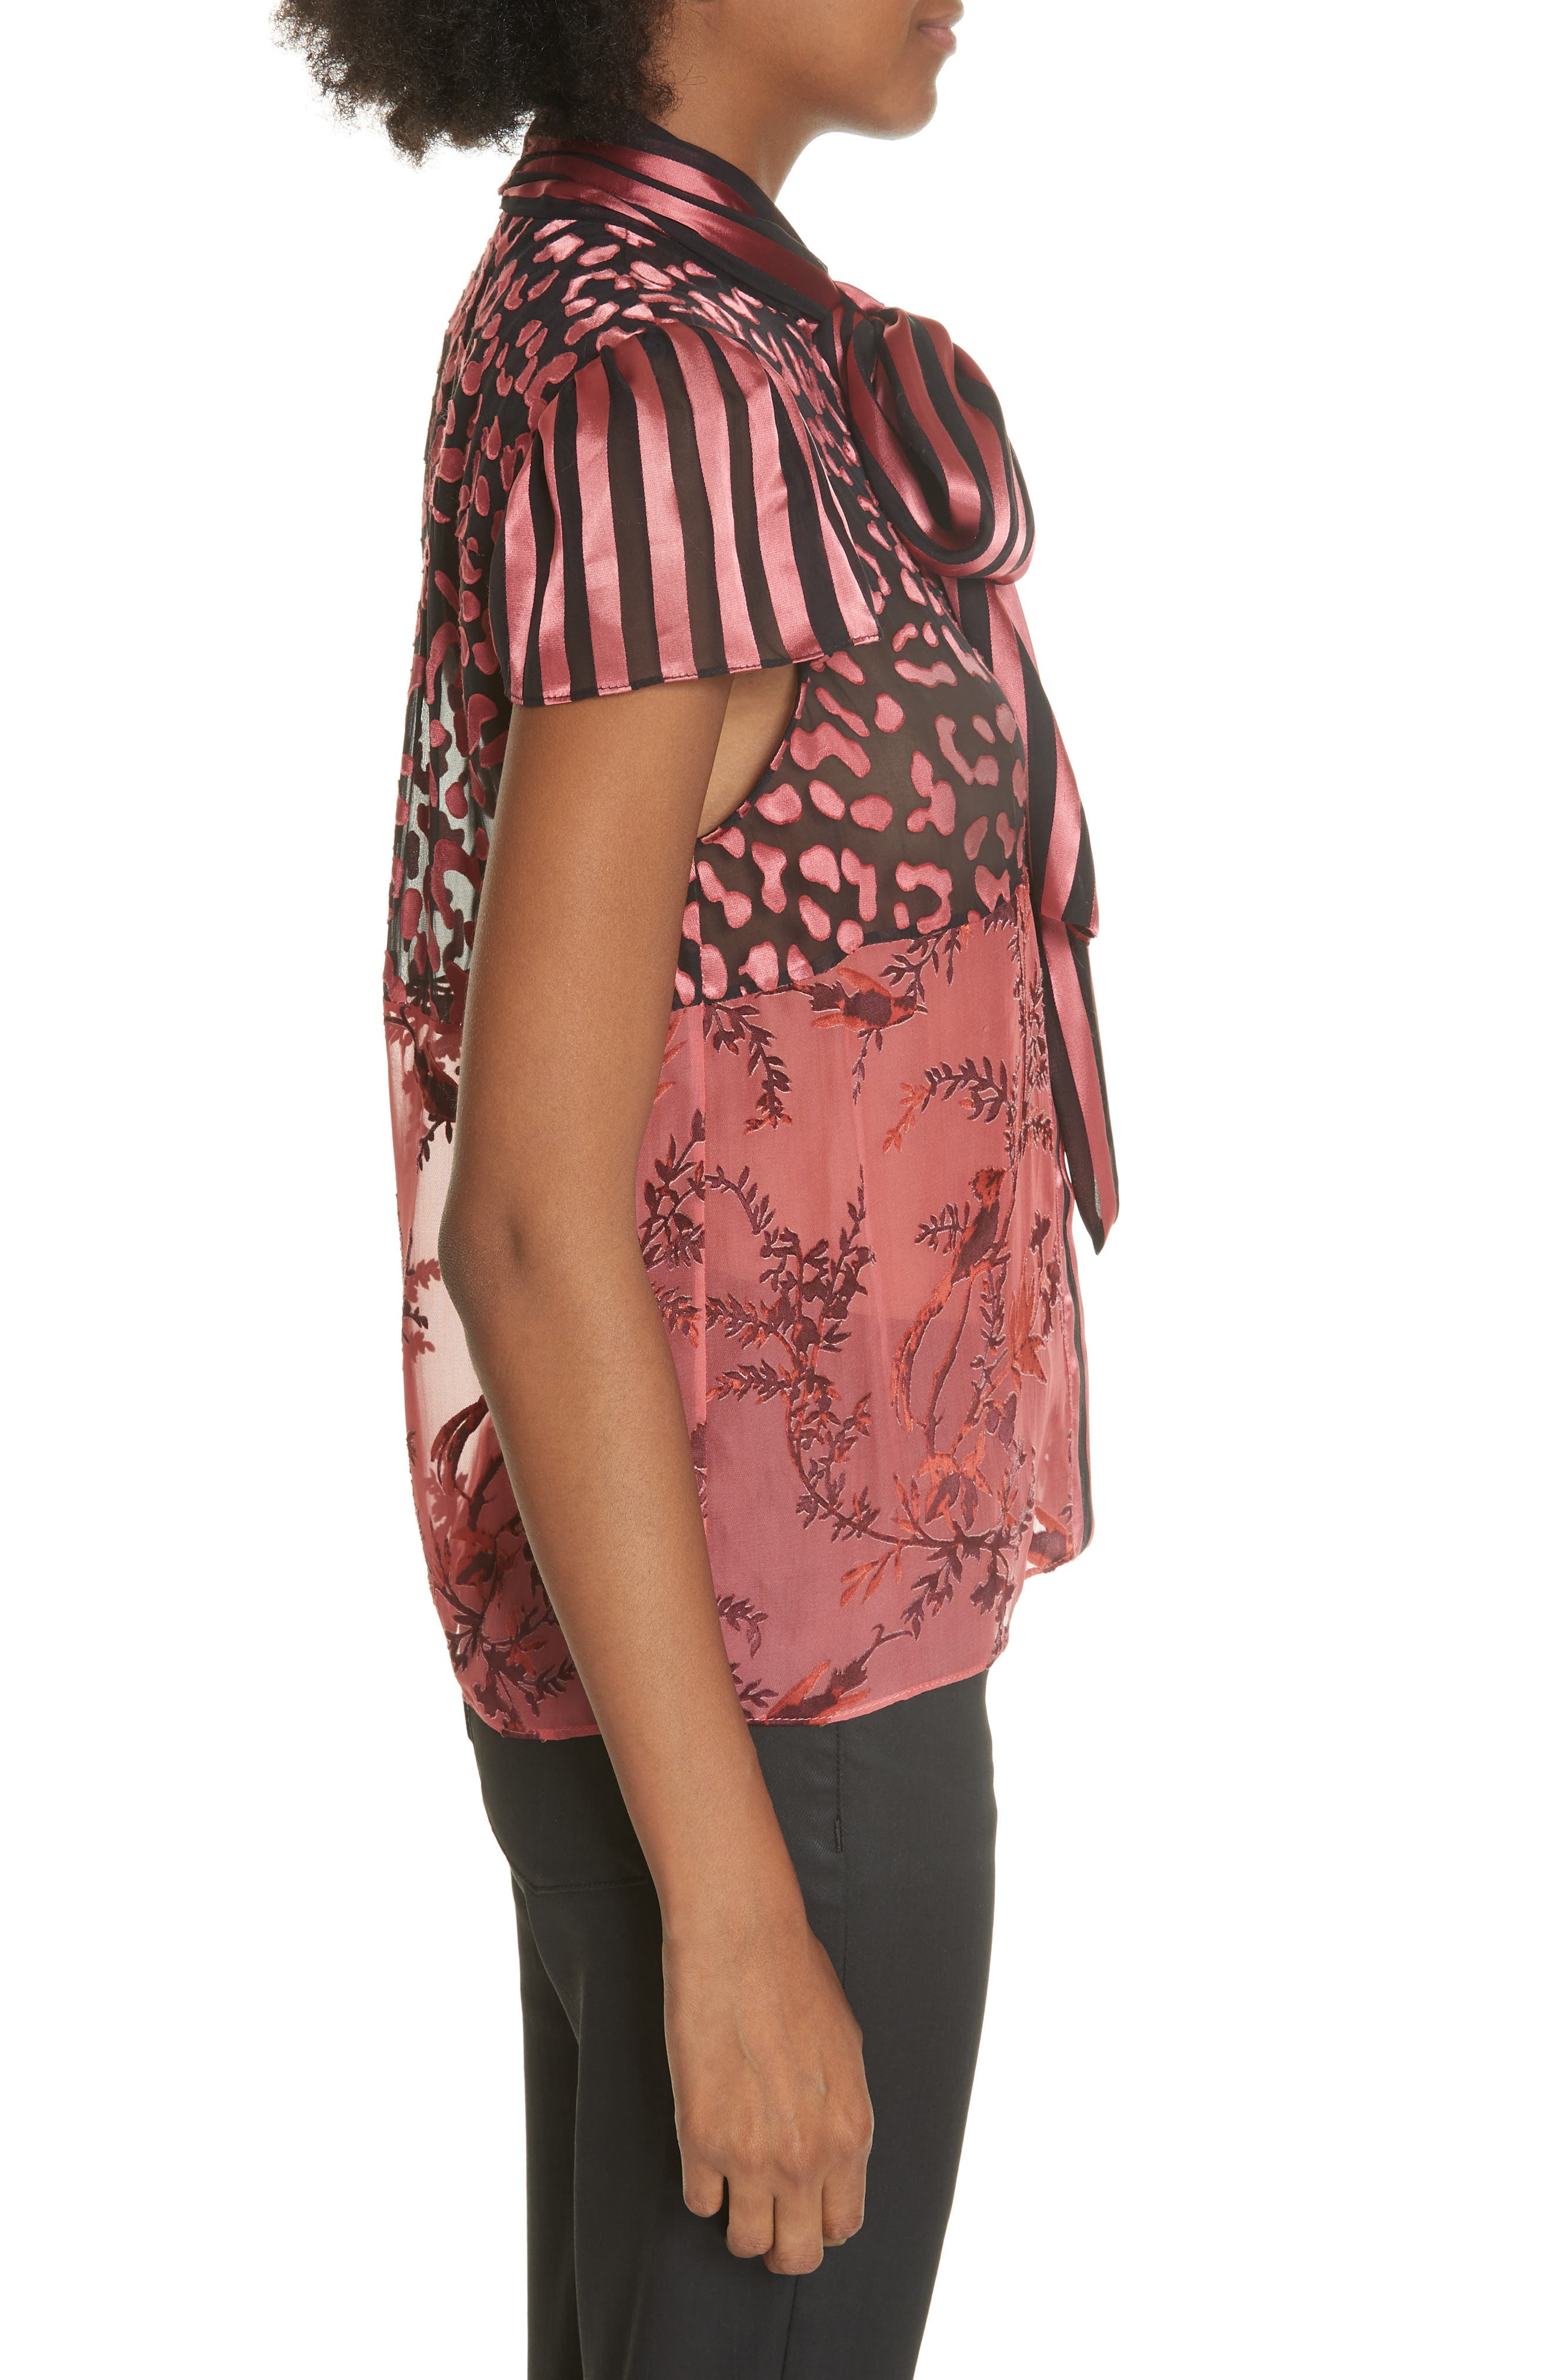 Jeannie Bow Neck Blouse,                             Alternate thumbnail 3, color,                             TWO TONE BIRD/ ROSE